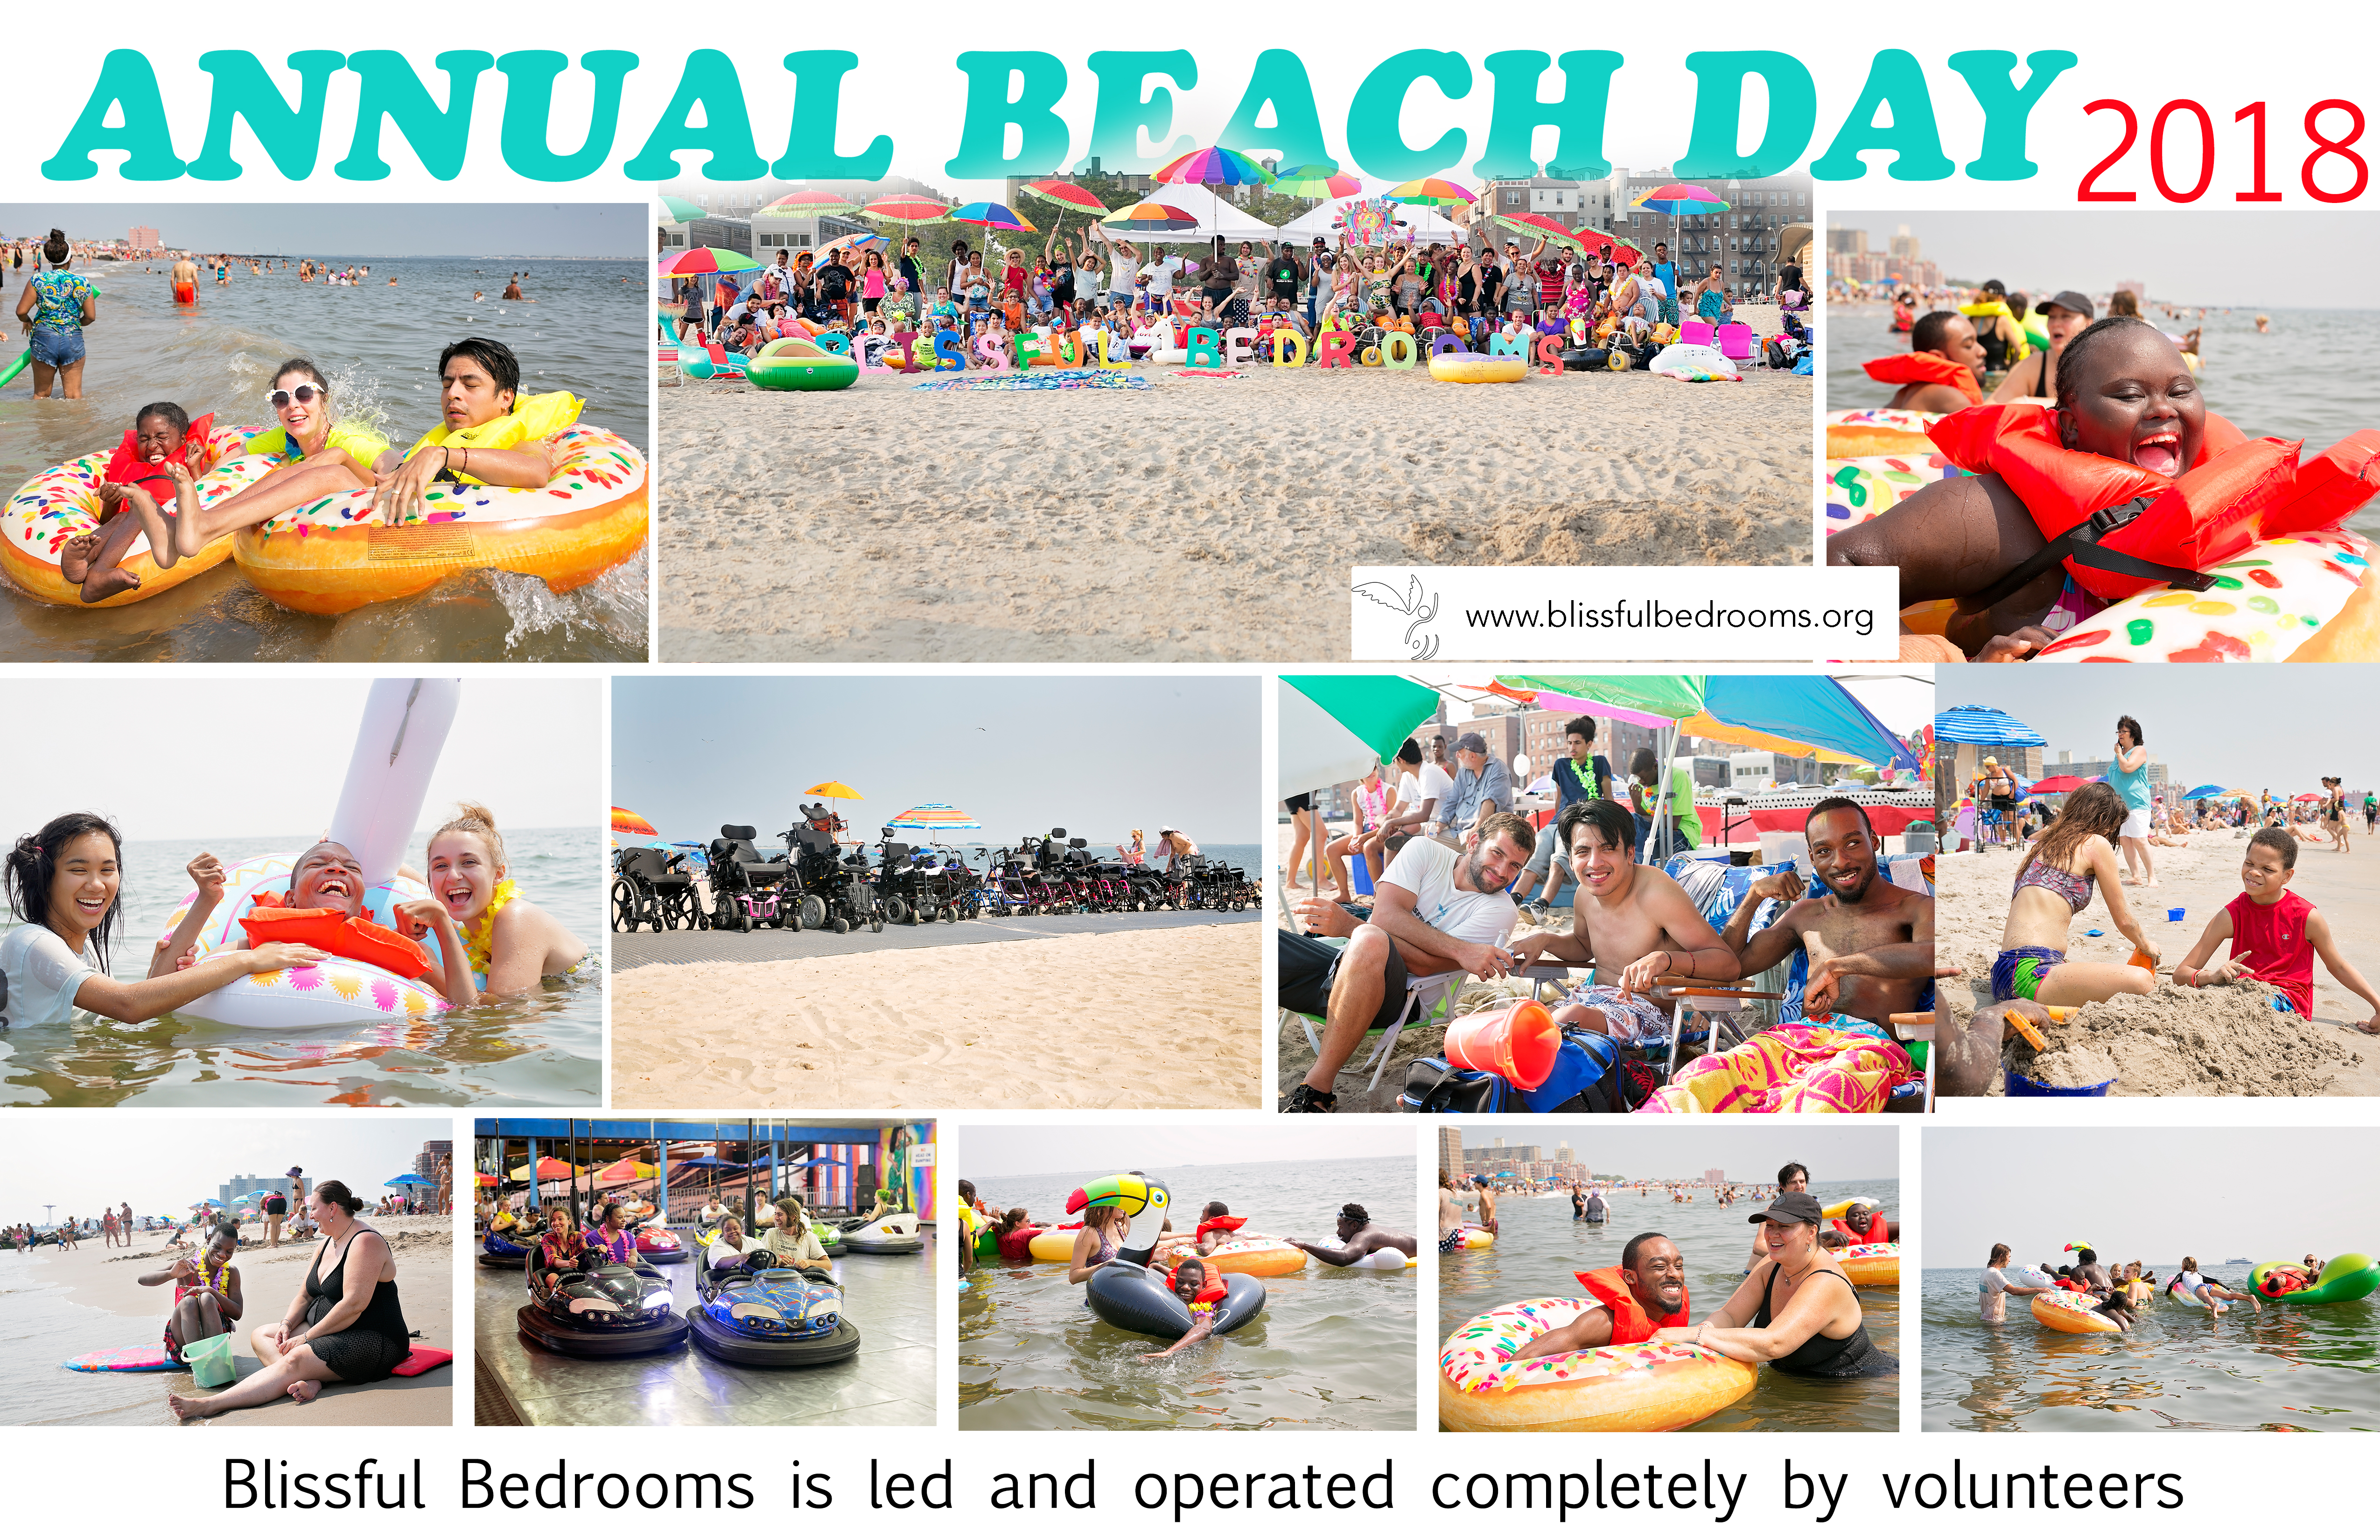 ANNUAL BEACH DAY WEBSITE COLLAGE 2018